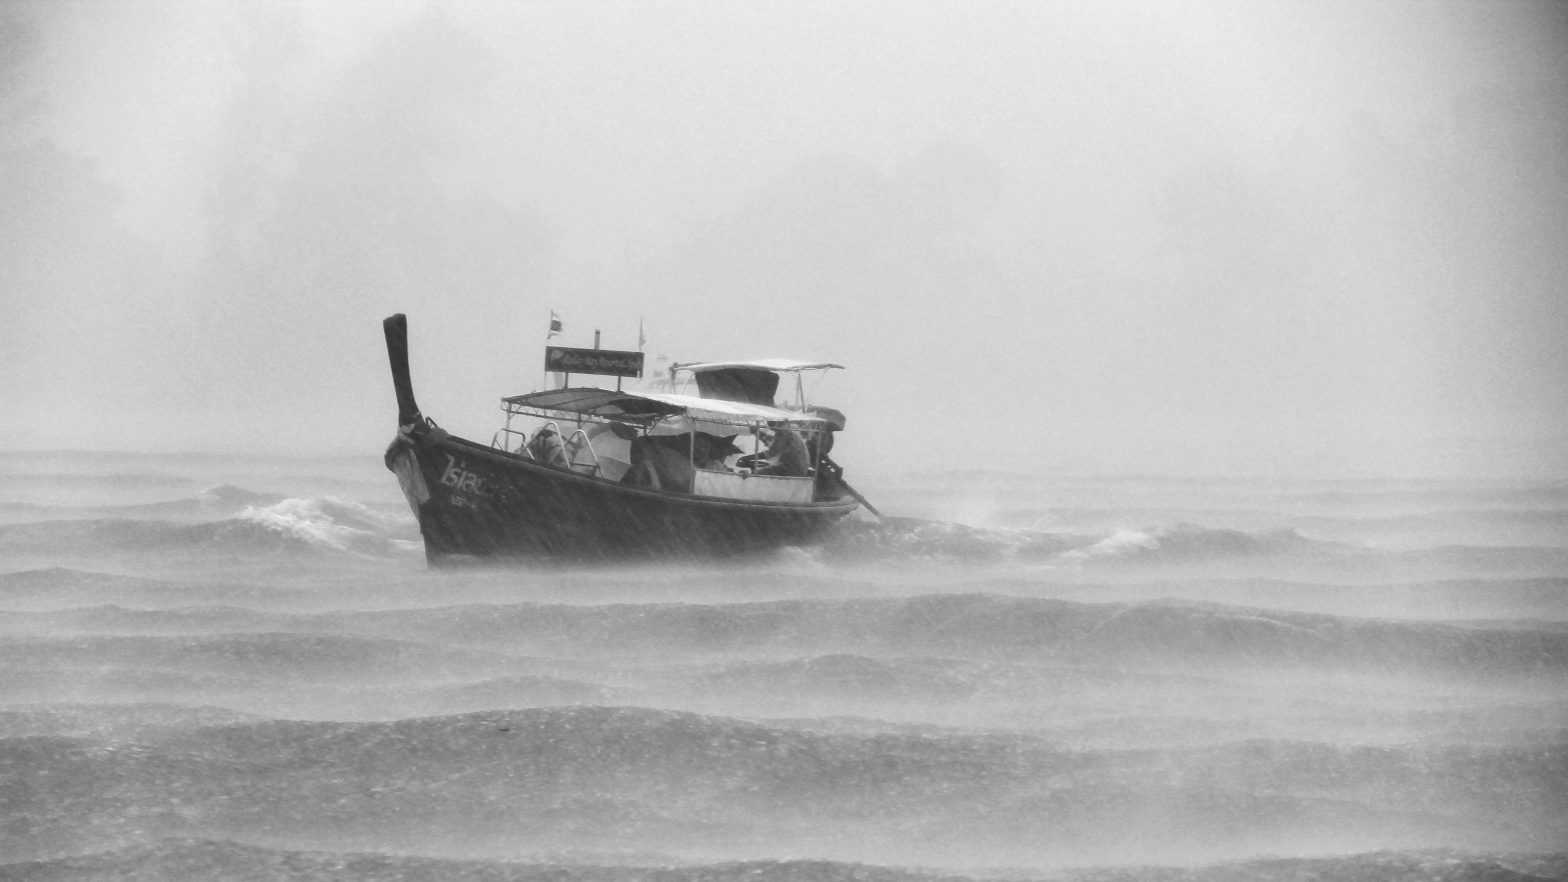 Safe Boating Tips in Foul Weather